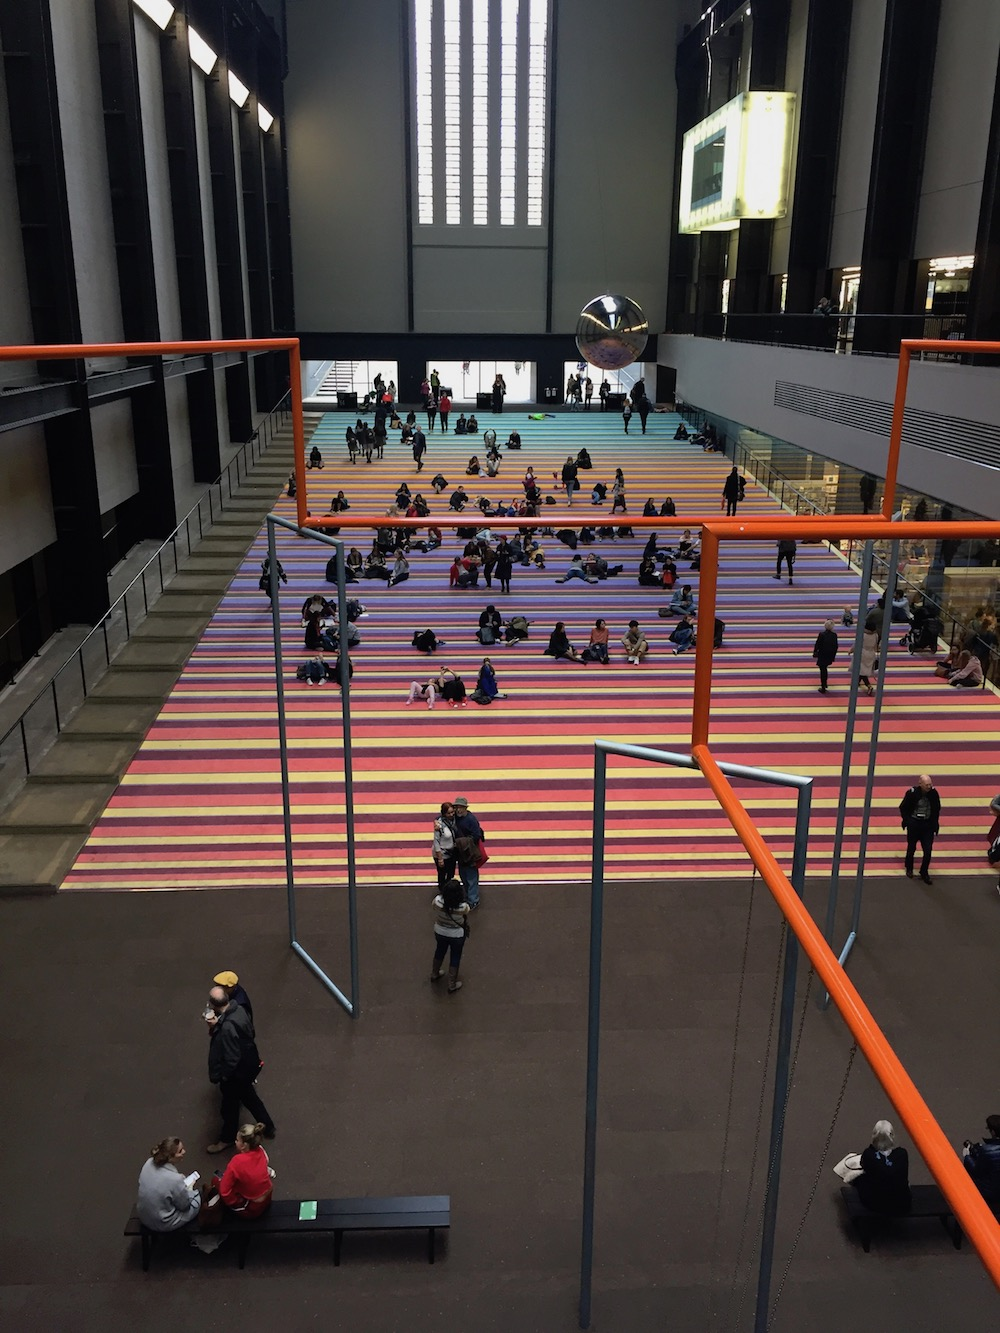 ONE TWO THREE SWING! by SUPERFLEX is at Tate Modern (until 02 APR 2018).